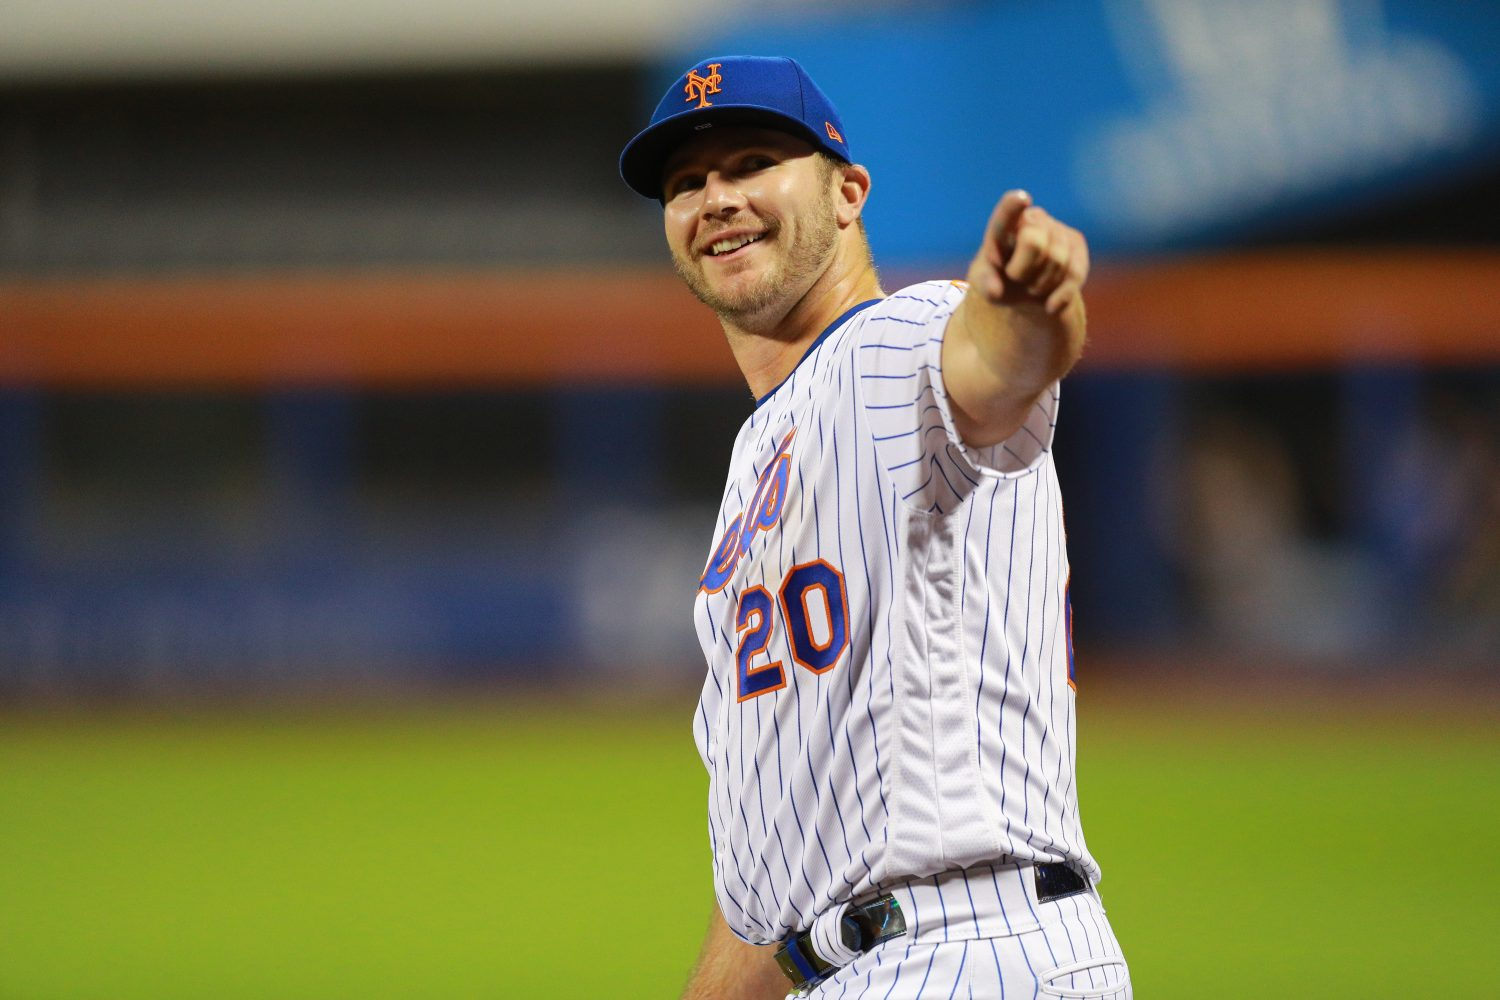 Pete Alonso Smiles as He Ties Judge Record